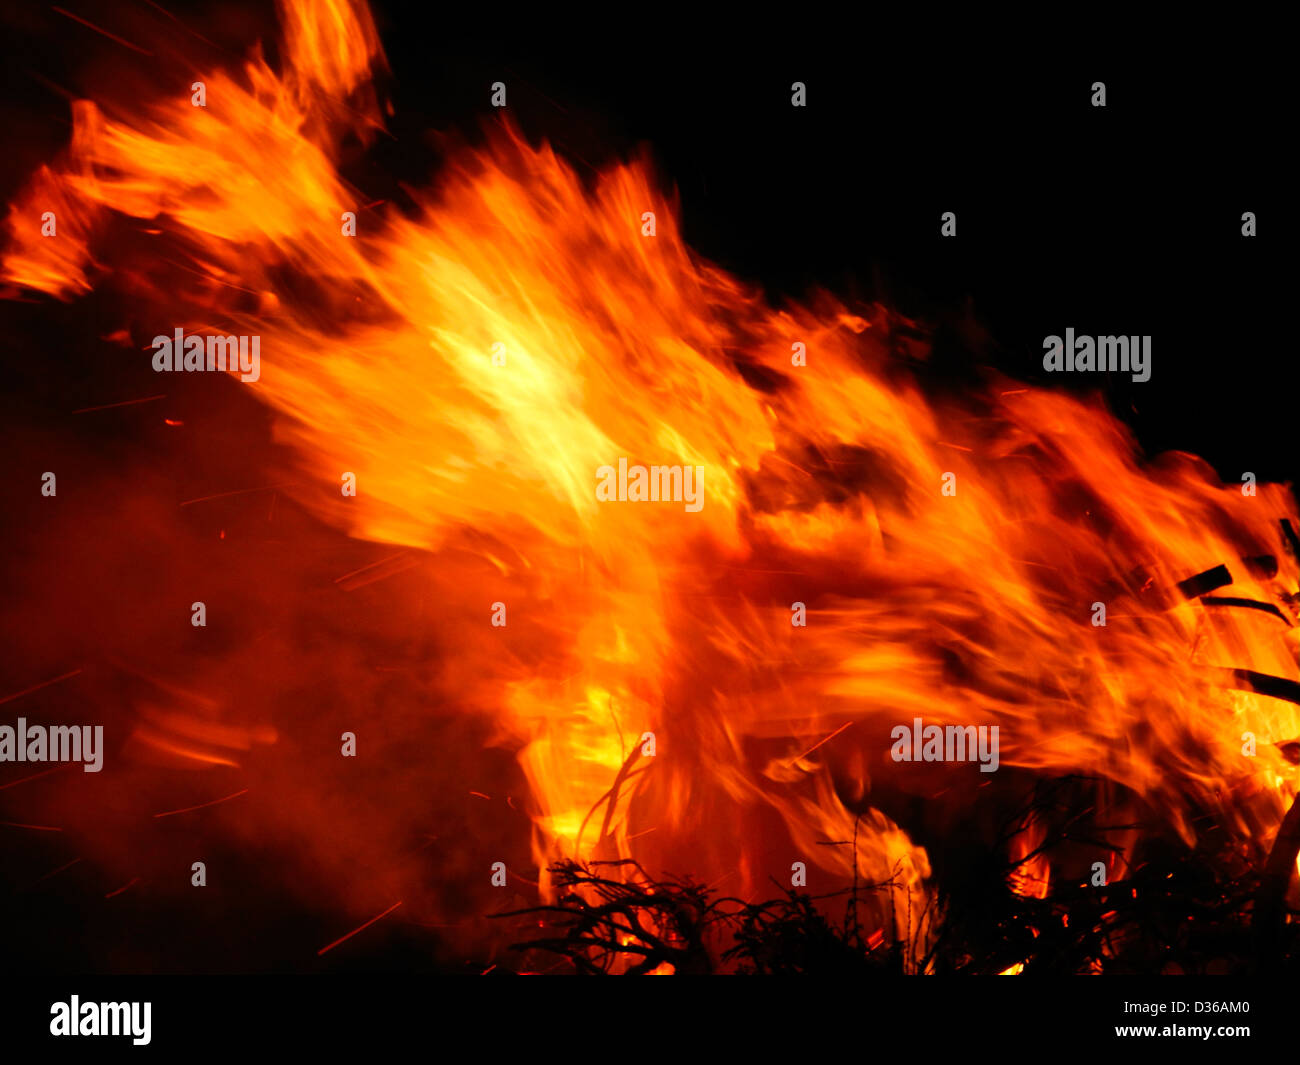 Flames fire burning conflagration inferno flame - Stock Image